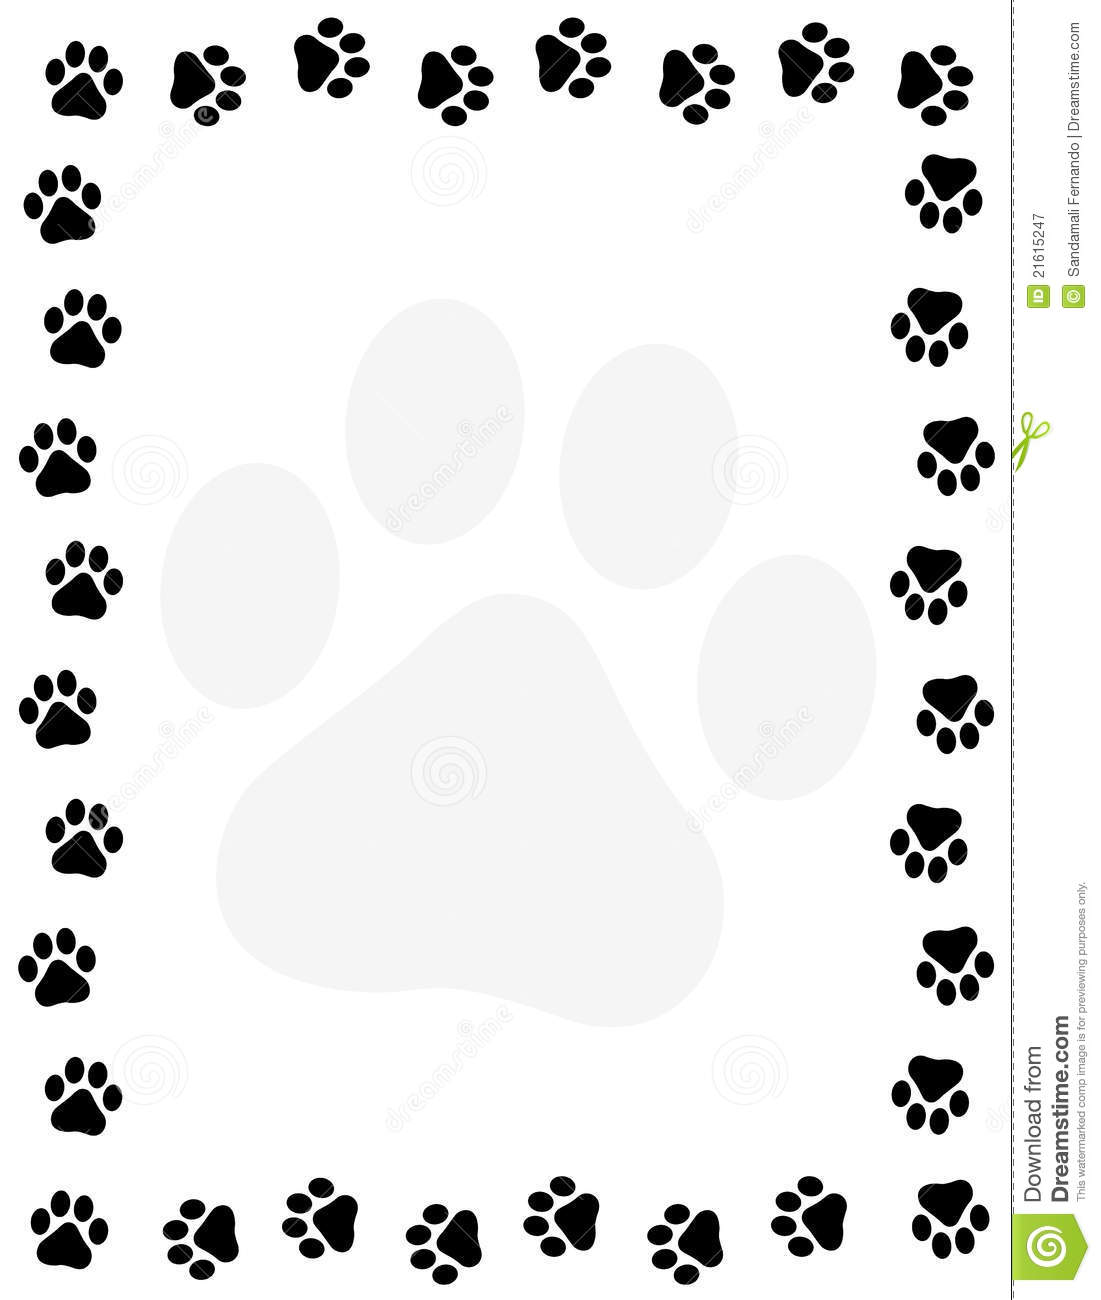 Paw Prints Border Royalty Free Stock Photography - Image: 21615247